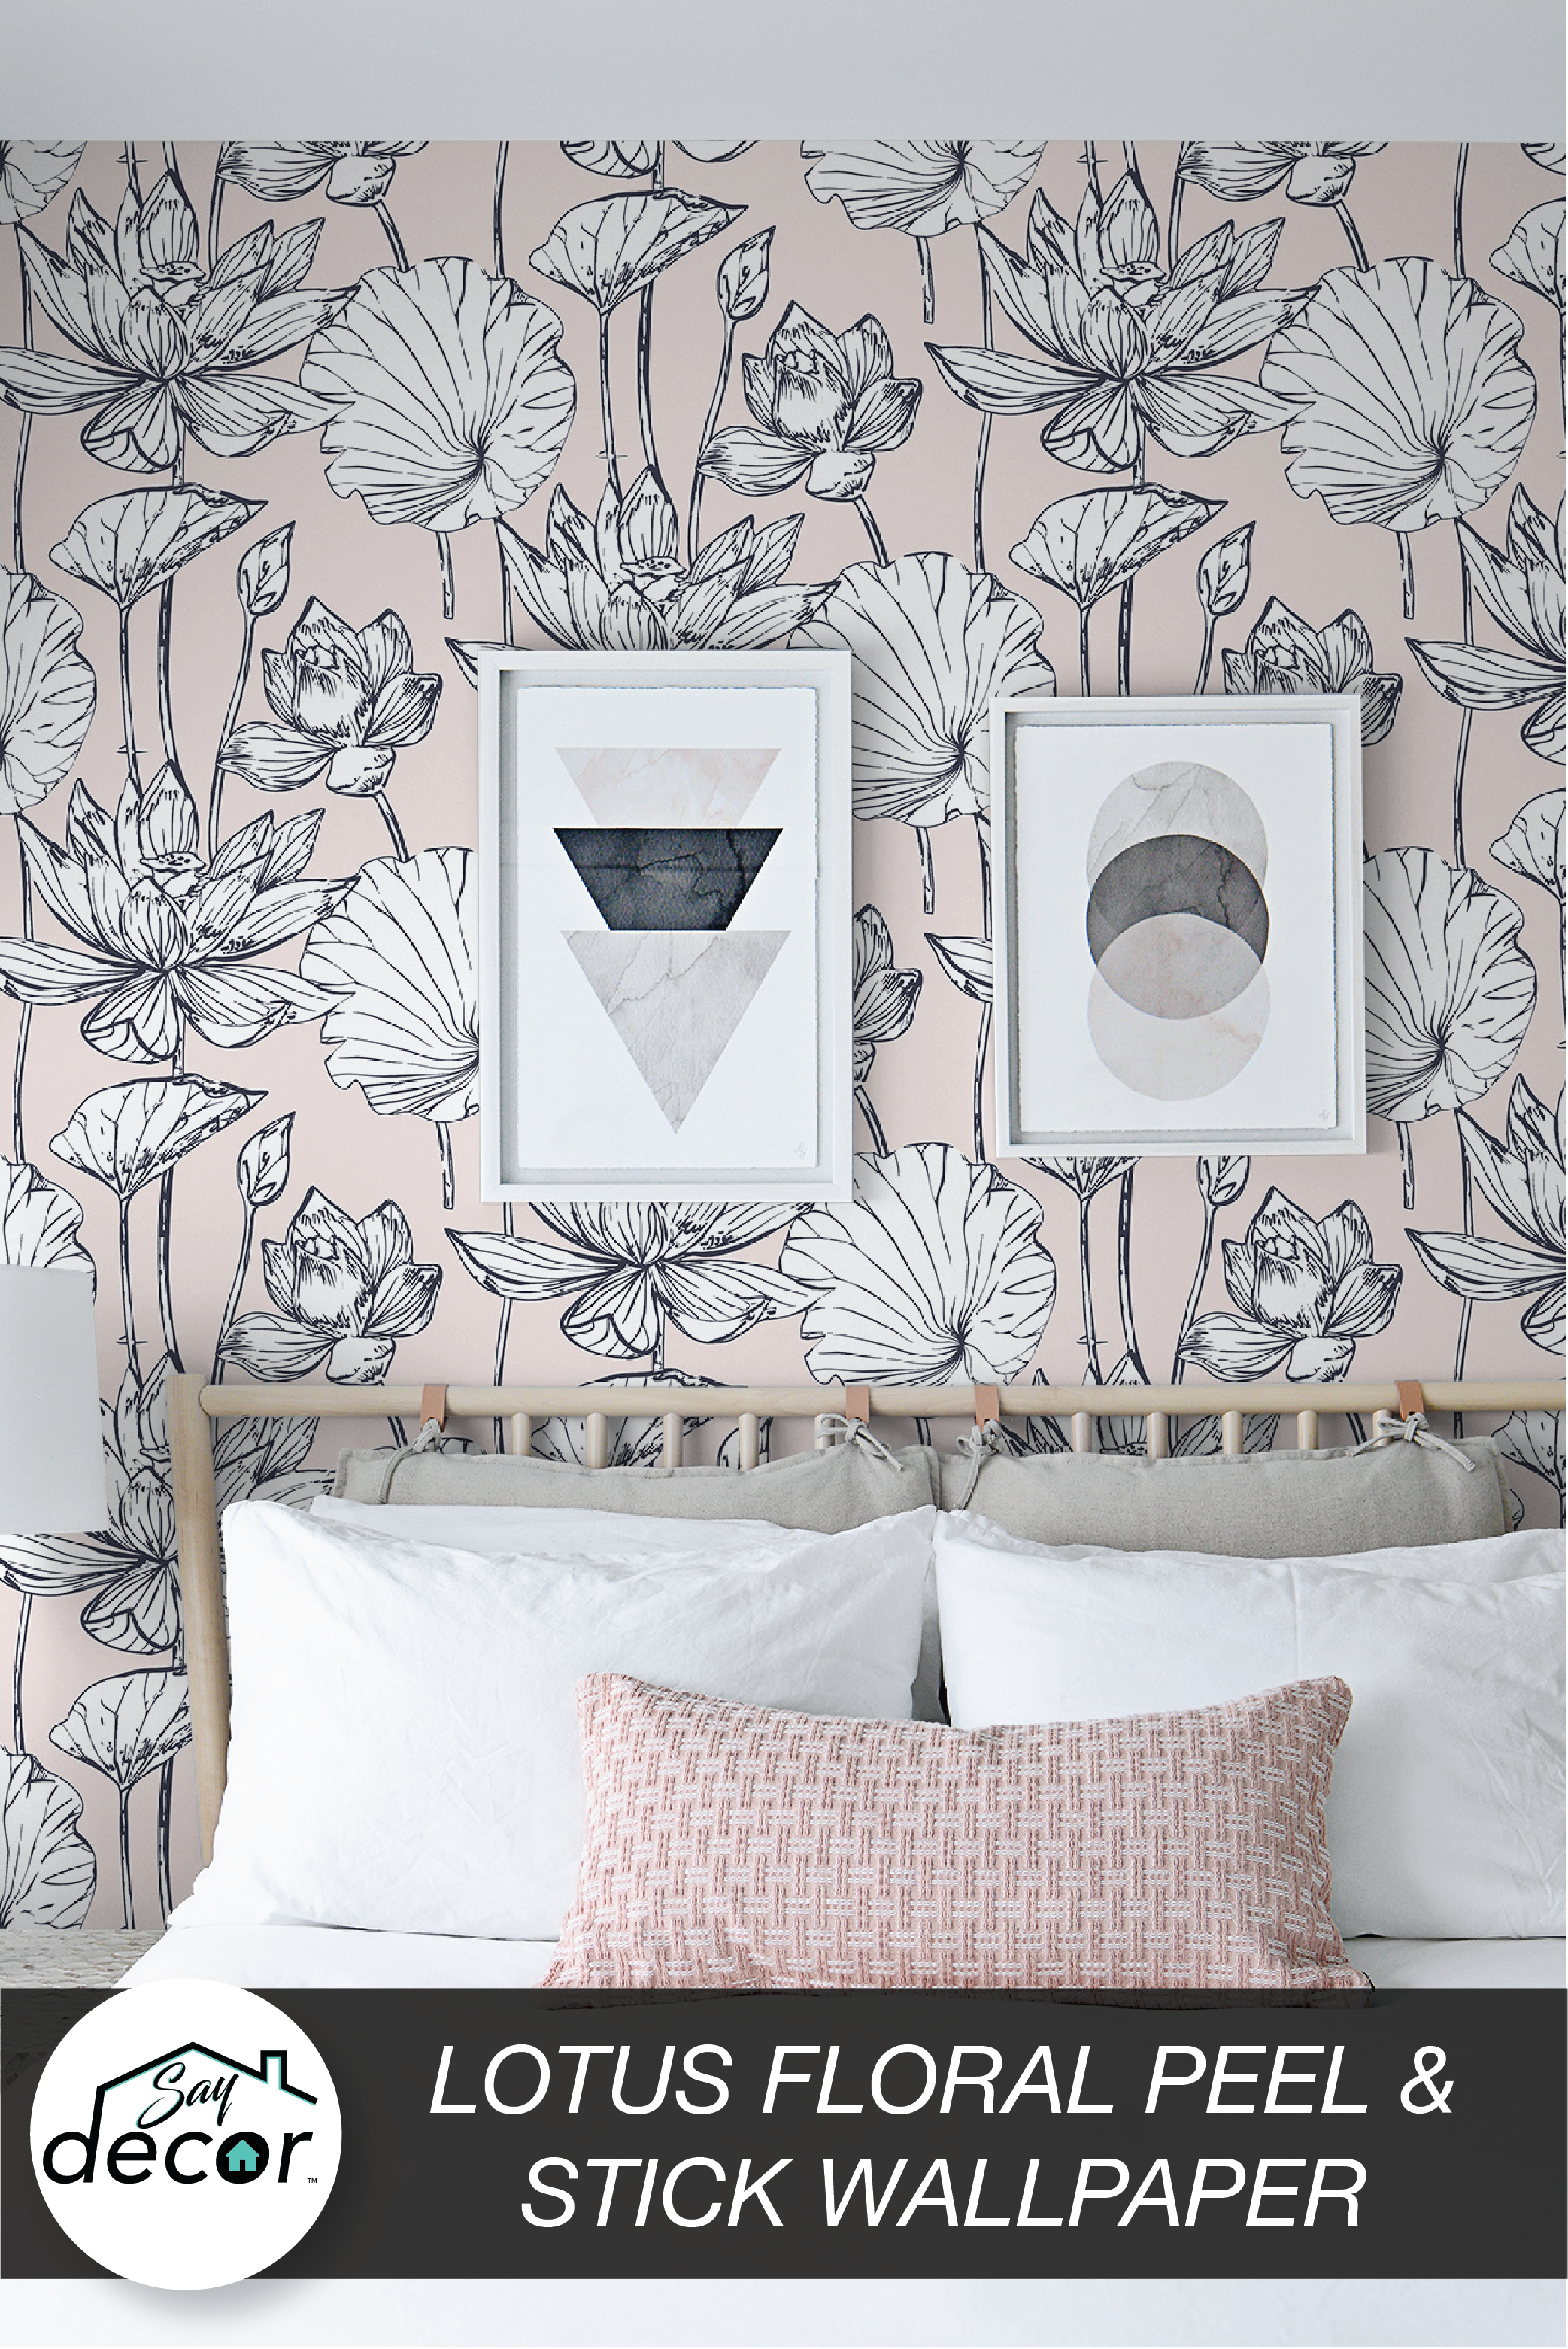 Peel And Stick Floral Pink Lotus Bohemian Removable Wallpaper Self Adhesive Pink Wall Decor Removable Wallpaper Pink Floral Wallpaper